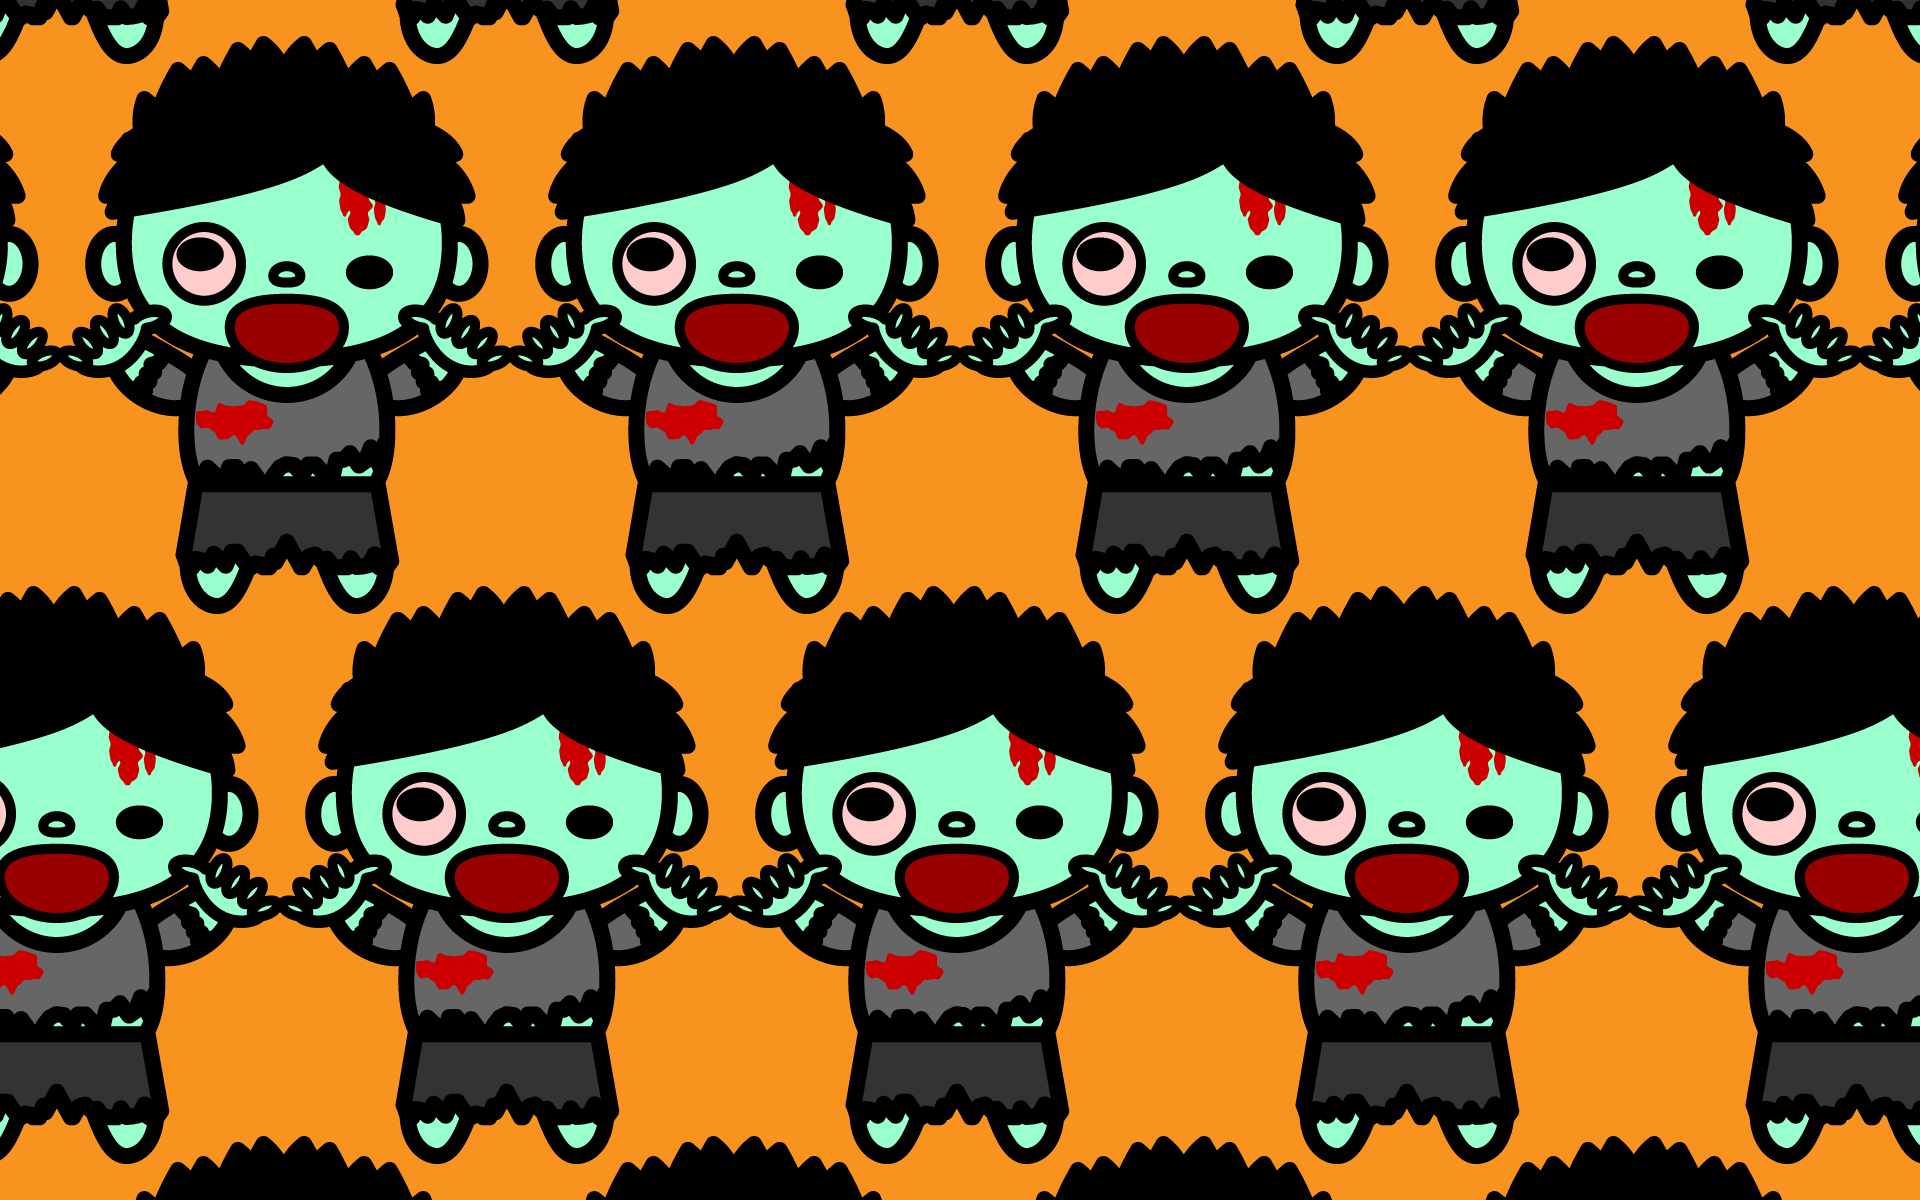 wallpaper2_zombie-man-fill-orange-pc